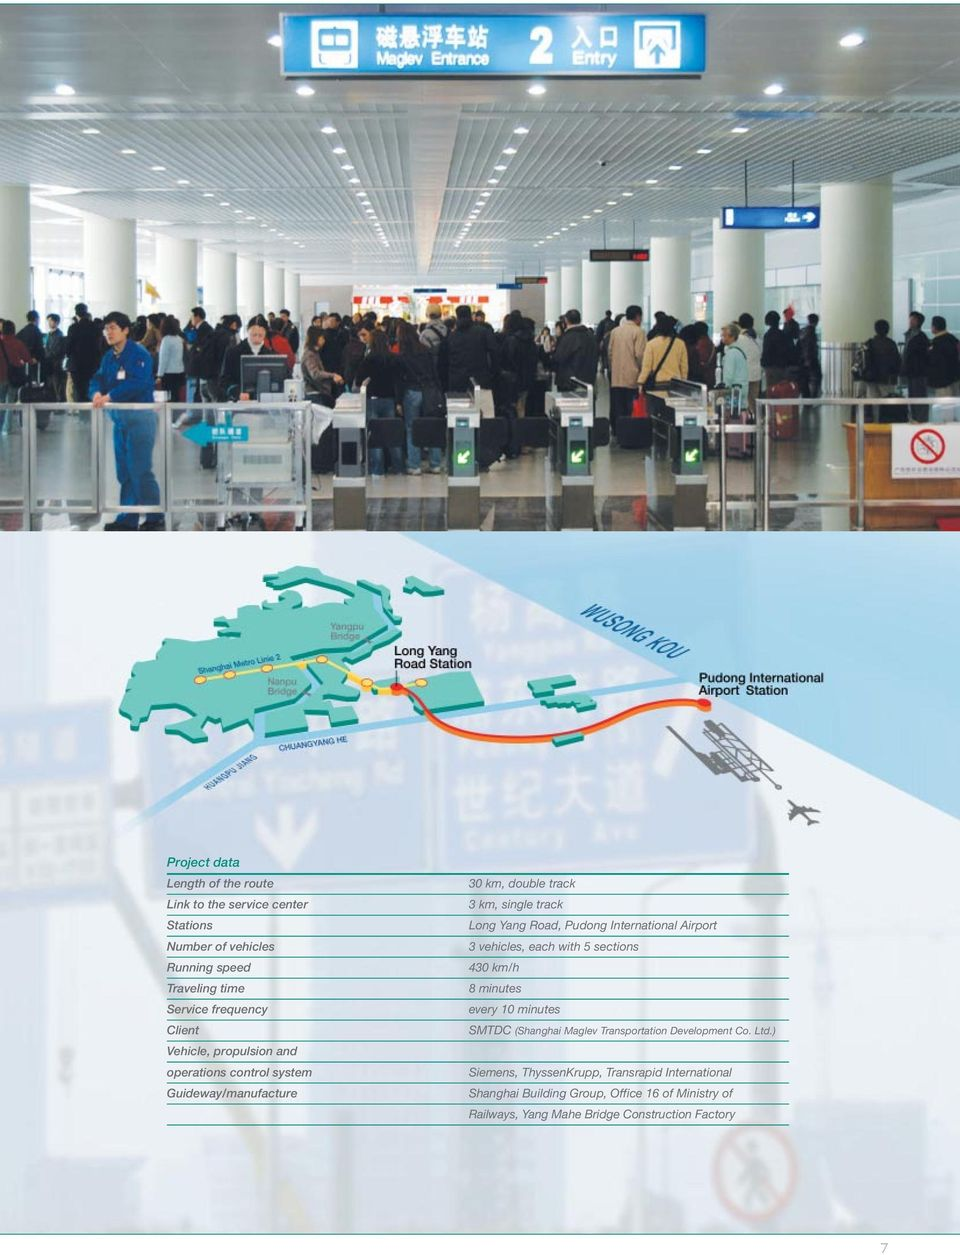 International Airport 3 vehicles, each with 5 sections 430 km/h 8 minutes every 10 minutes SMTDC (Shanghai Maglev Transportation Development Co.